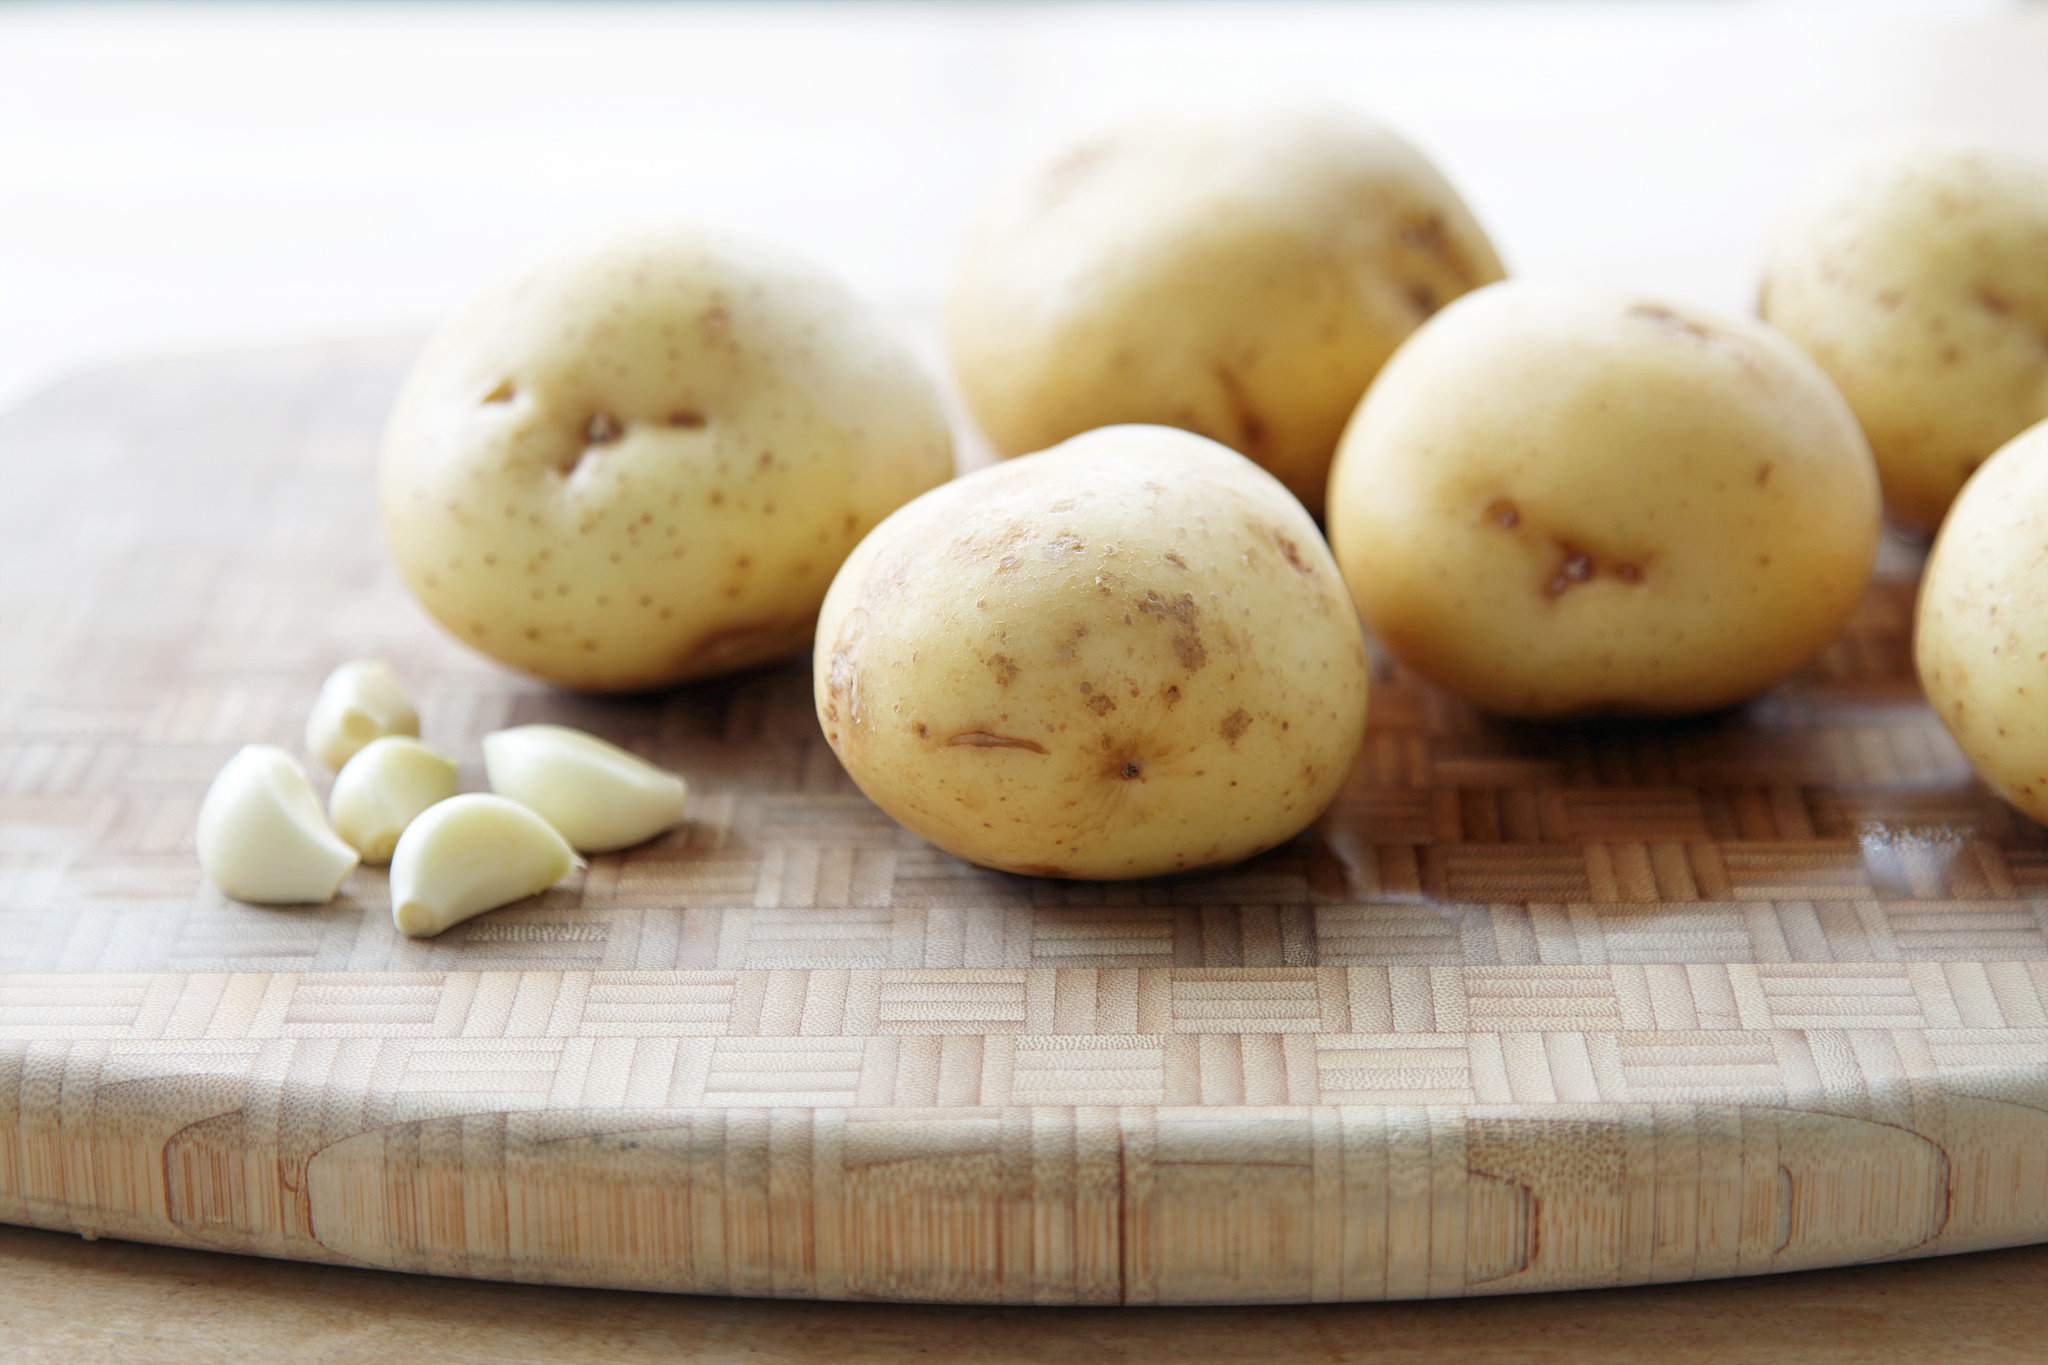 Potatoes Can Help With Weight Loss – Here's What You Need to Know